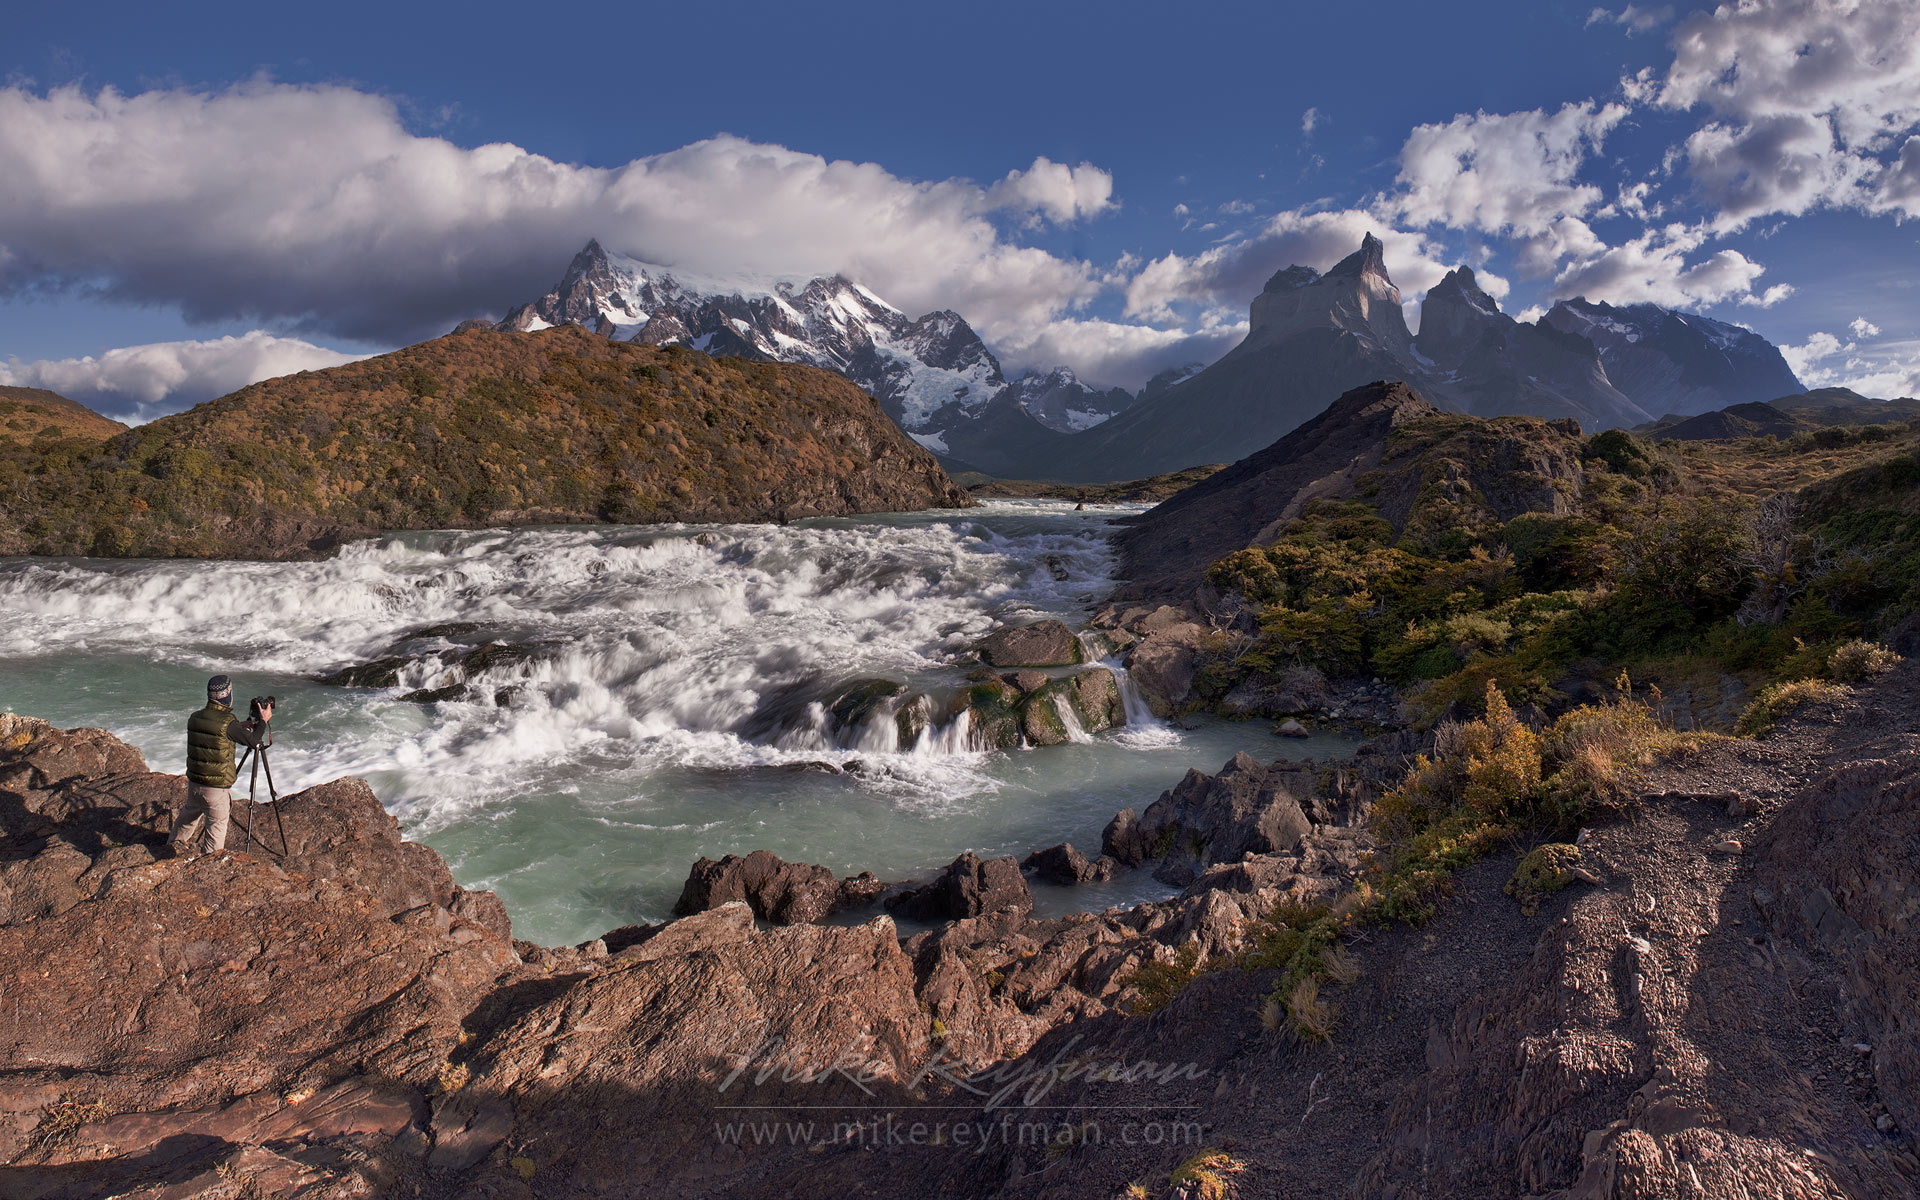 Photographer at work. Rio Paine rapids and Cuernos del Paine. Torres del Paine National Park, Magallanes and Antartica Chilena Region XII, Patagonia, Chile. - Torres-Del-Paine-National-Park-Patagonia-Chile - Mike Reyfman Photography